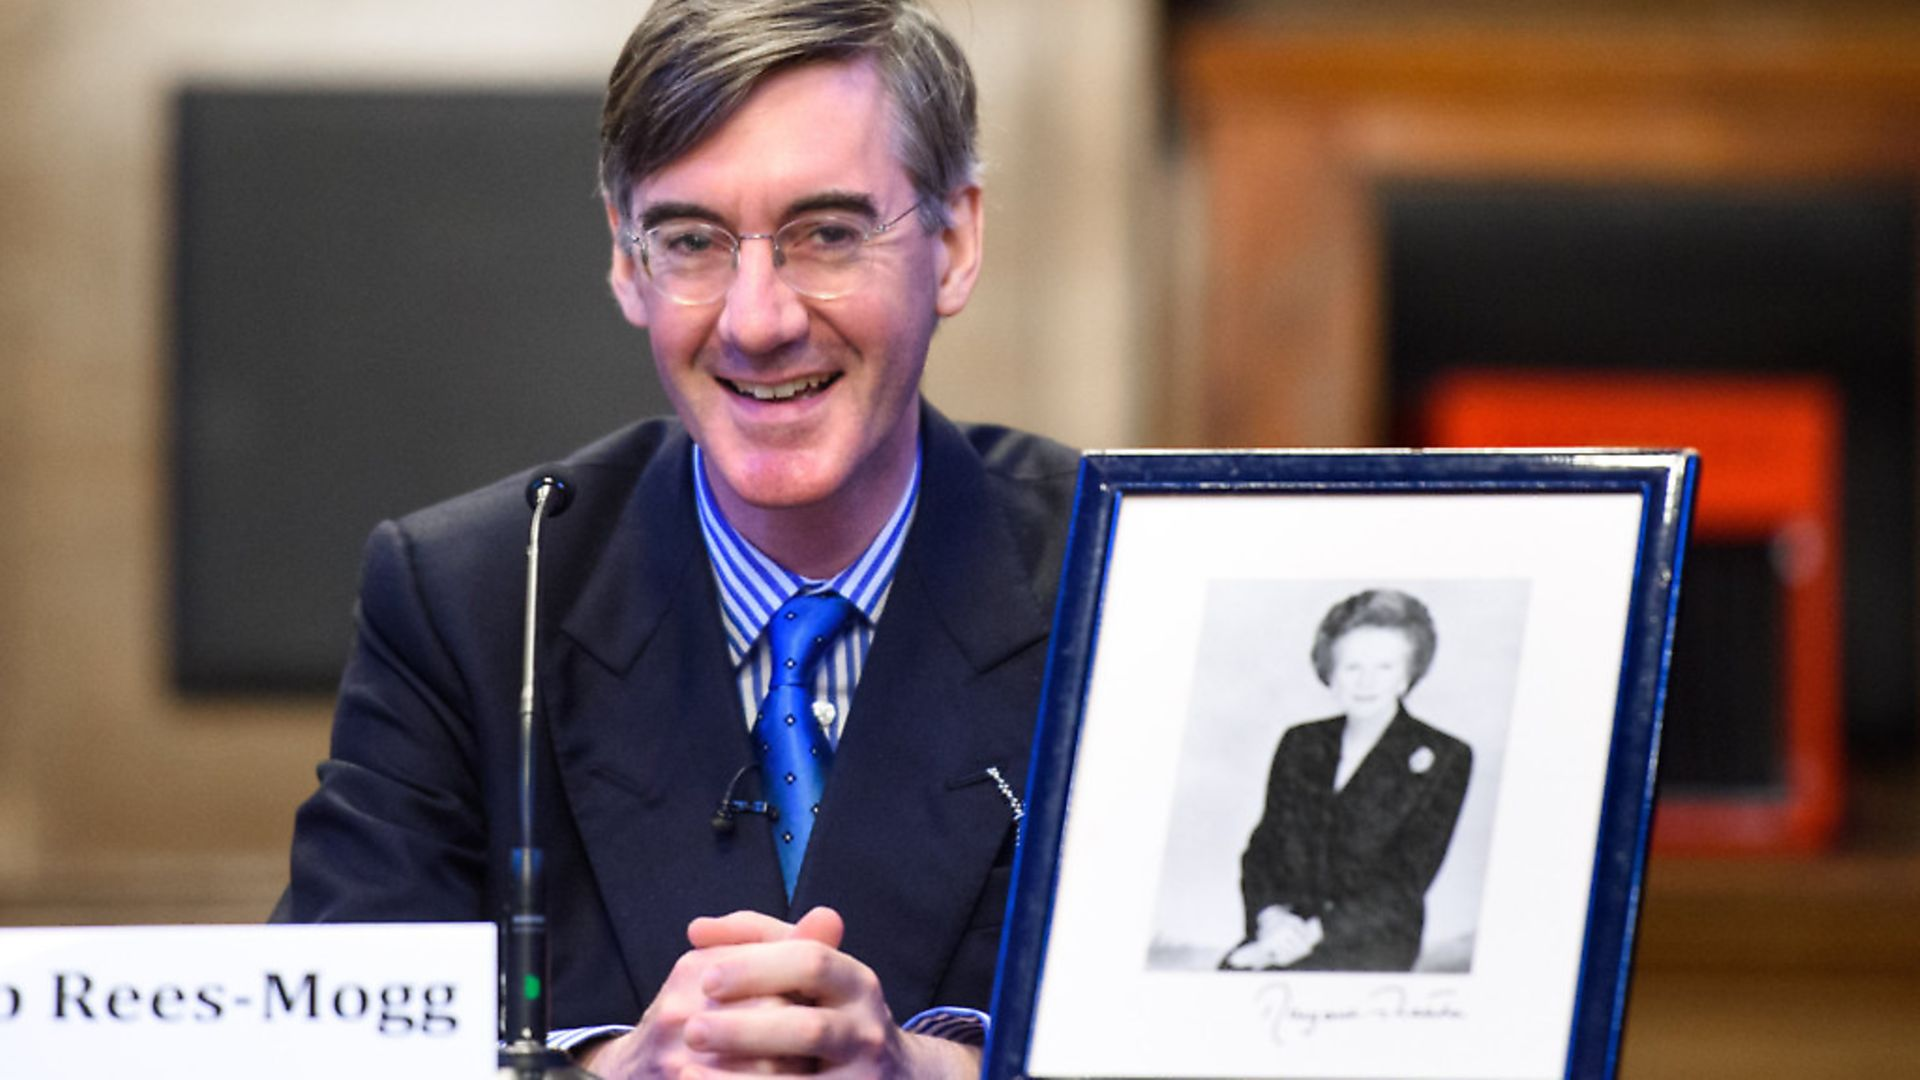 Jacob Rees-Mogg pictured at a fringe meeting at Manchester Town Hall, called 'Brexit with Jacob Rees-Mogg', held by the Bruges Group as part of the Conservative Party Conference in Manchester. Picture date: 2 October, 2017. Photograph: Matt Crossick/EMPICS Entertainment. - Credit: Empics Entertainment